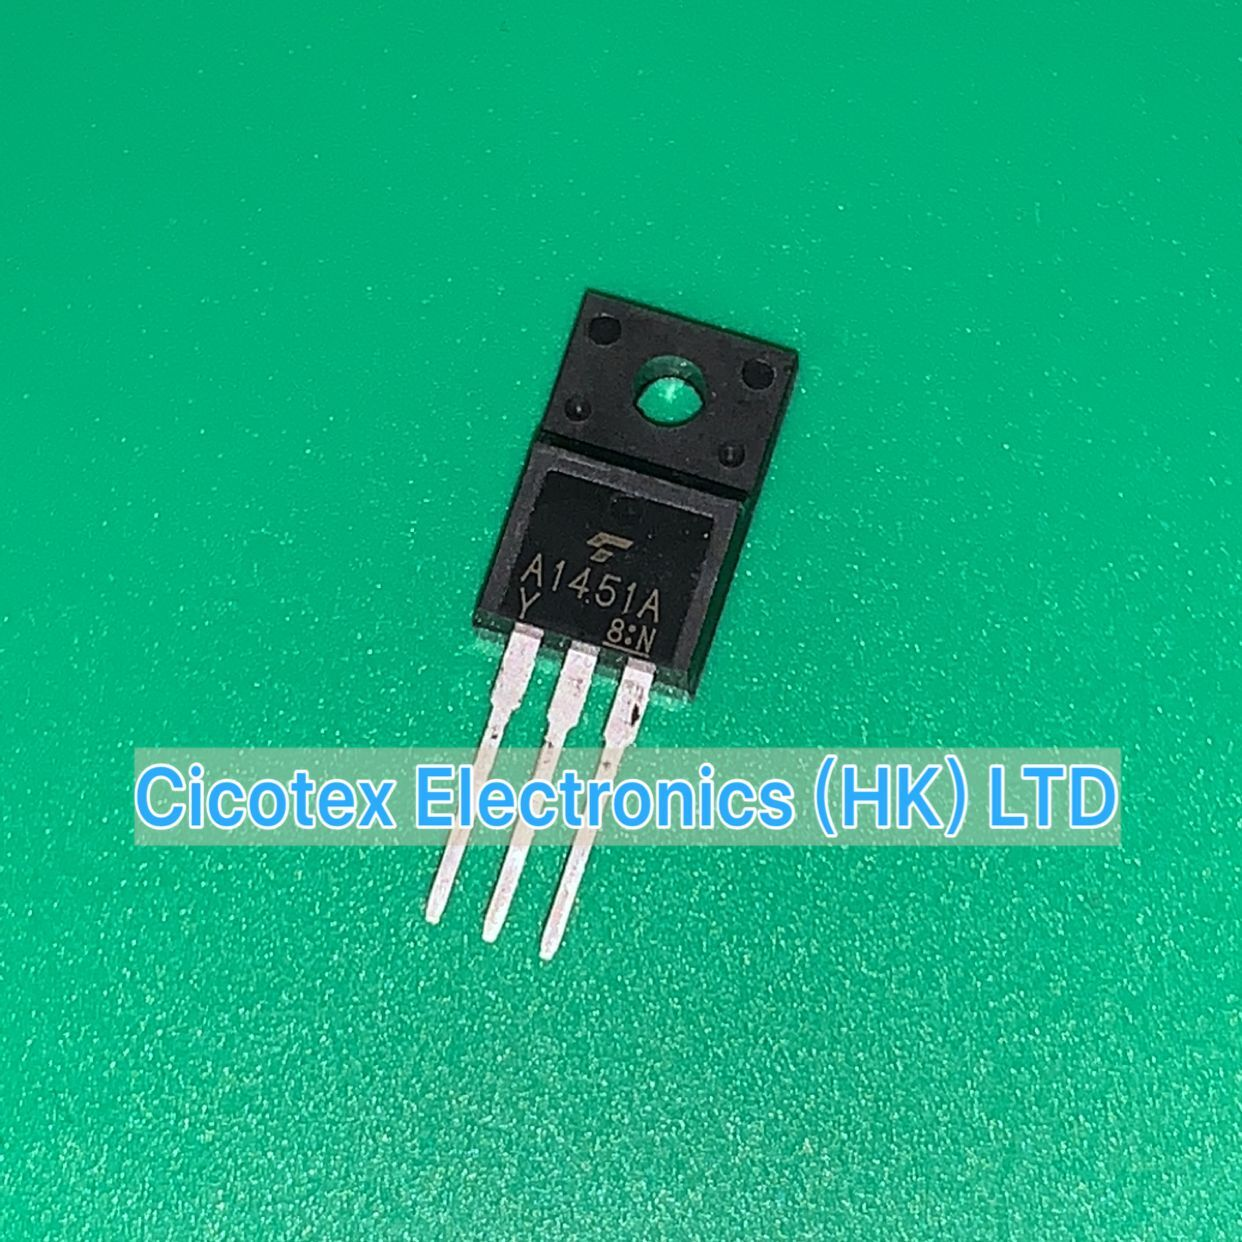 10pcs/lot 2SA1451A-Y A1451A TO220F High-Speed High-Current Switching Applications 2SA1451A-Y A1451A-Y